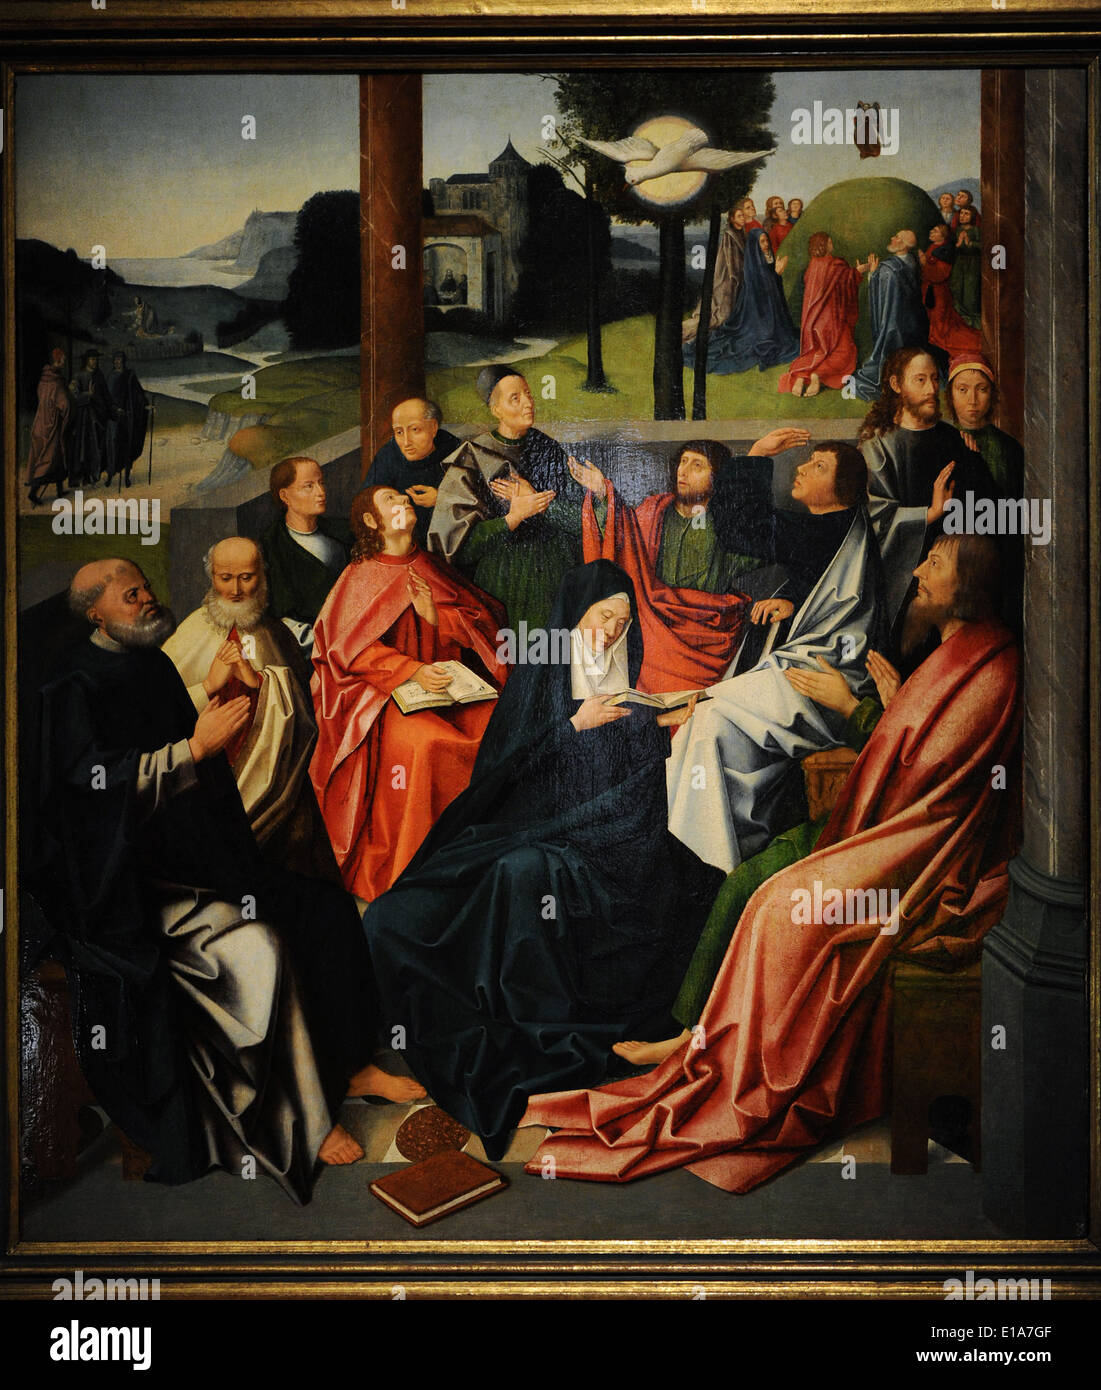 Descent of the Holy Spirit. Haarlem?. Late 15th century. Anonymous. Catharijneconvent Museum. Utrecht. Netherlands. - Stock Image